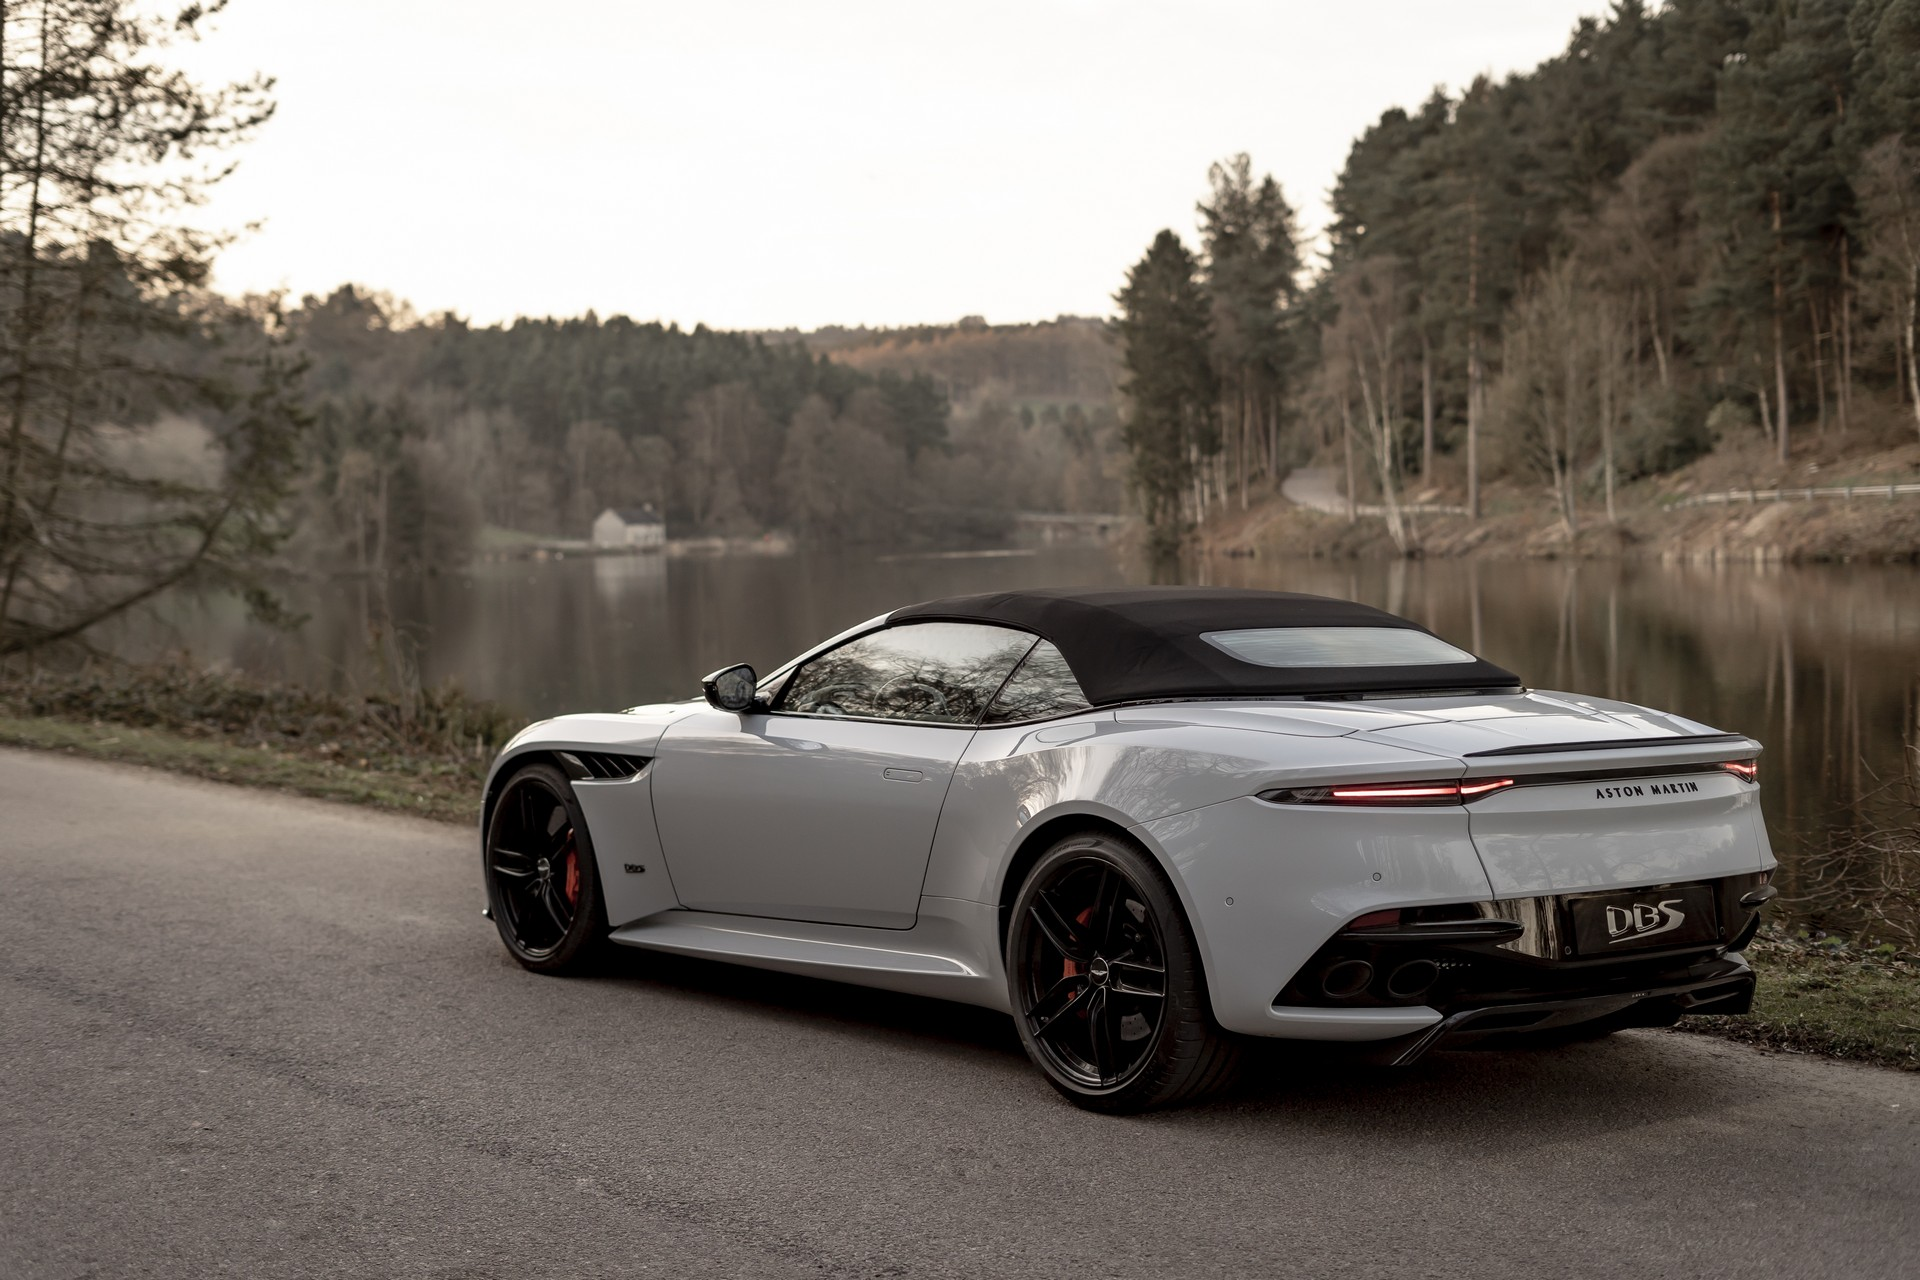 Aston Martin unveils the DBS Superleggera Volante, its fastest convertible yet